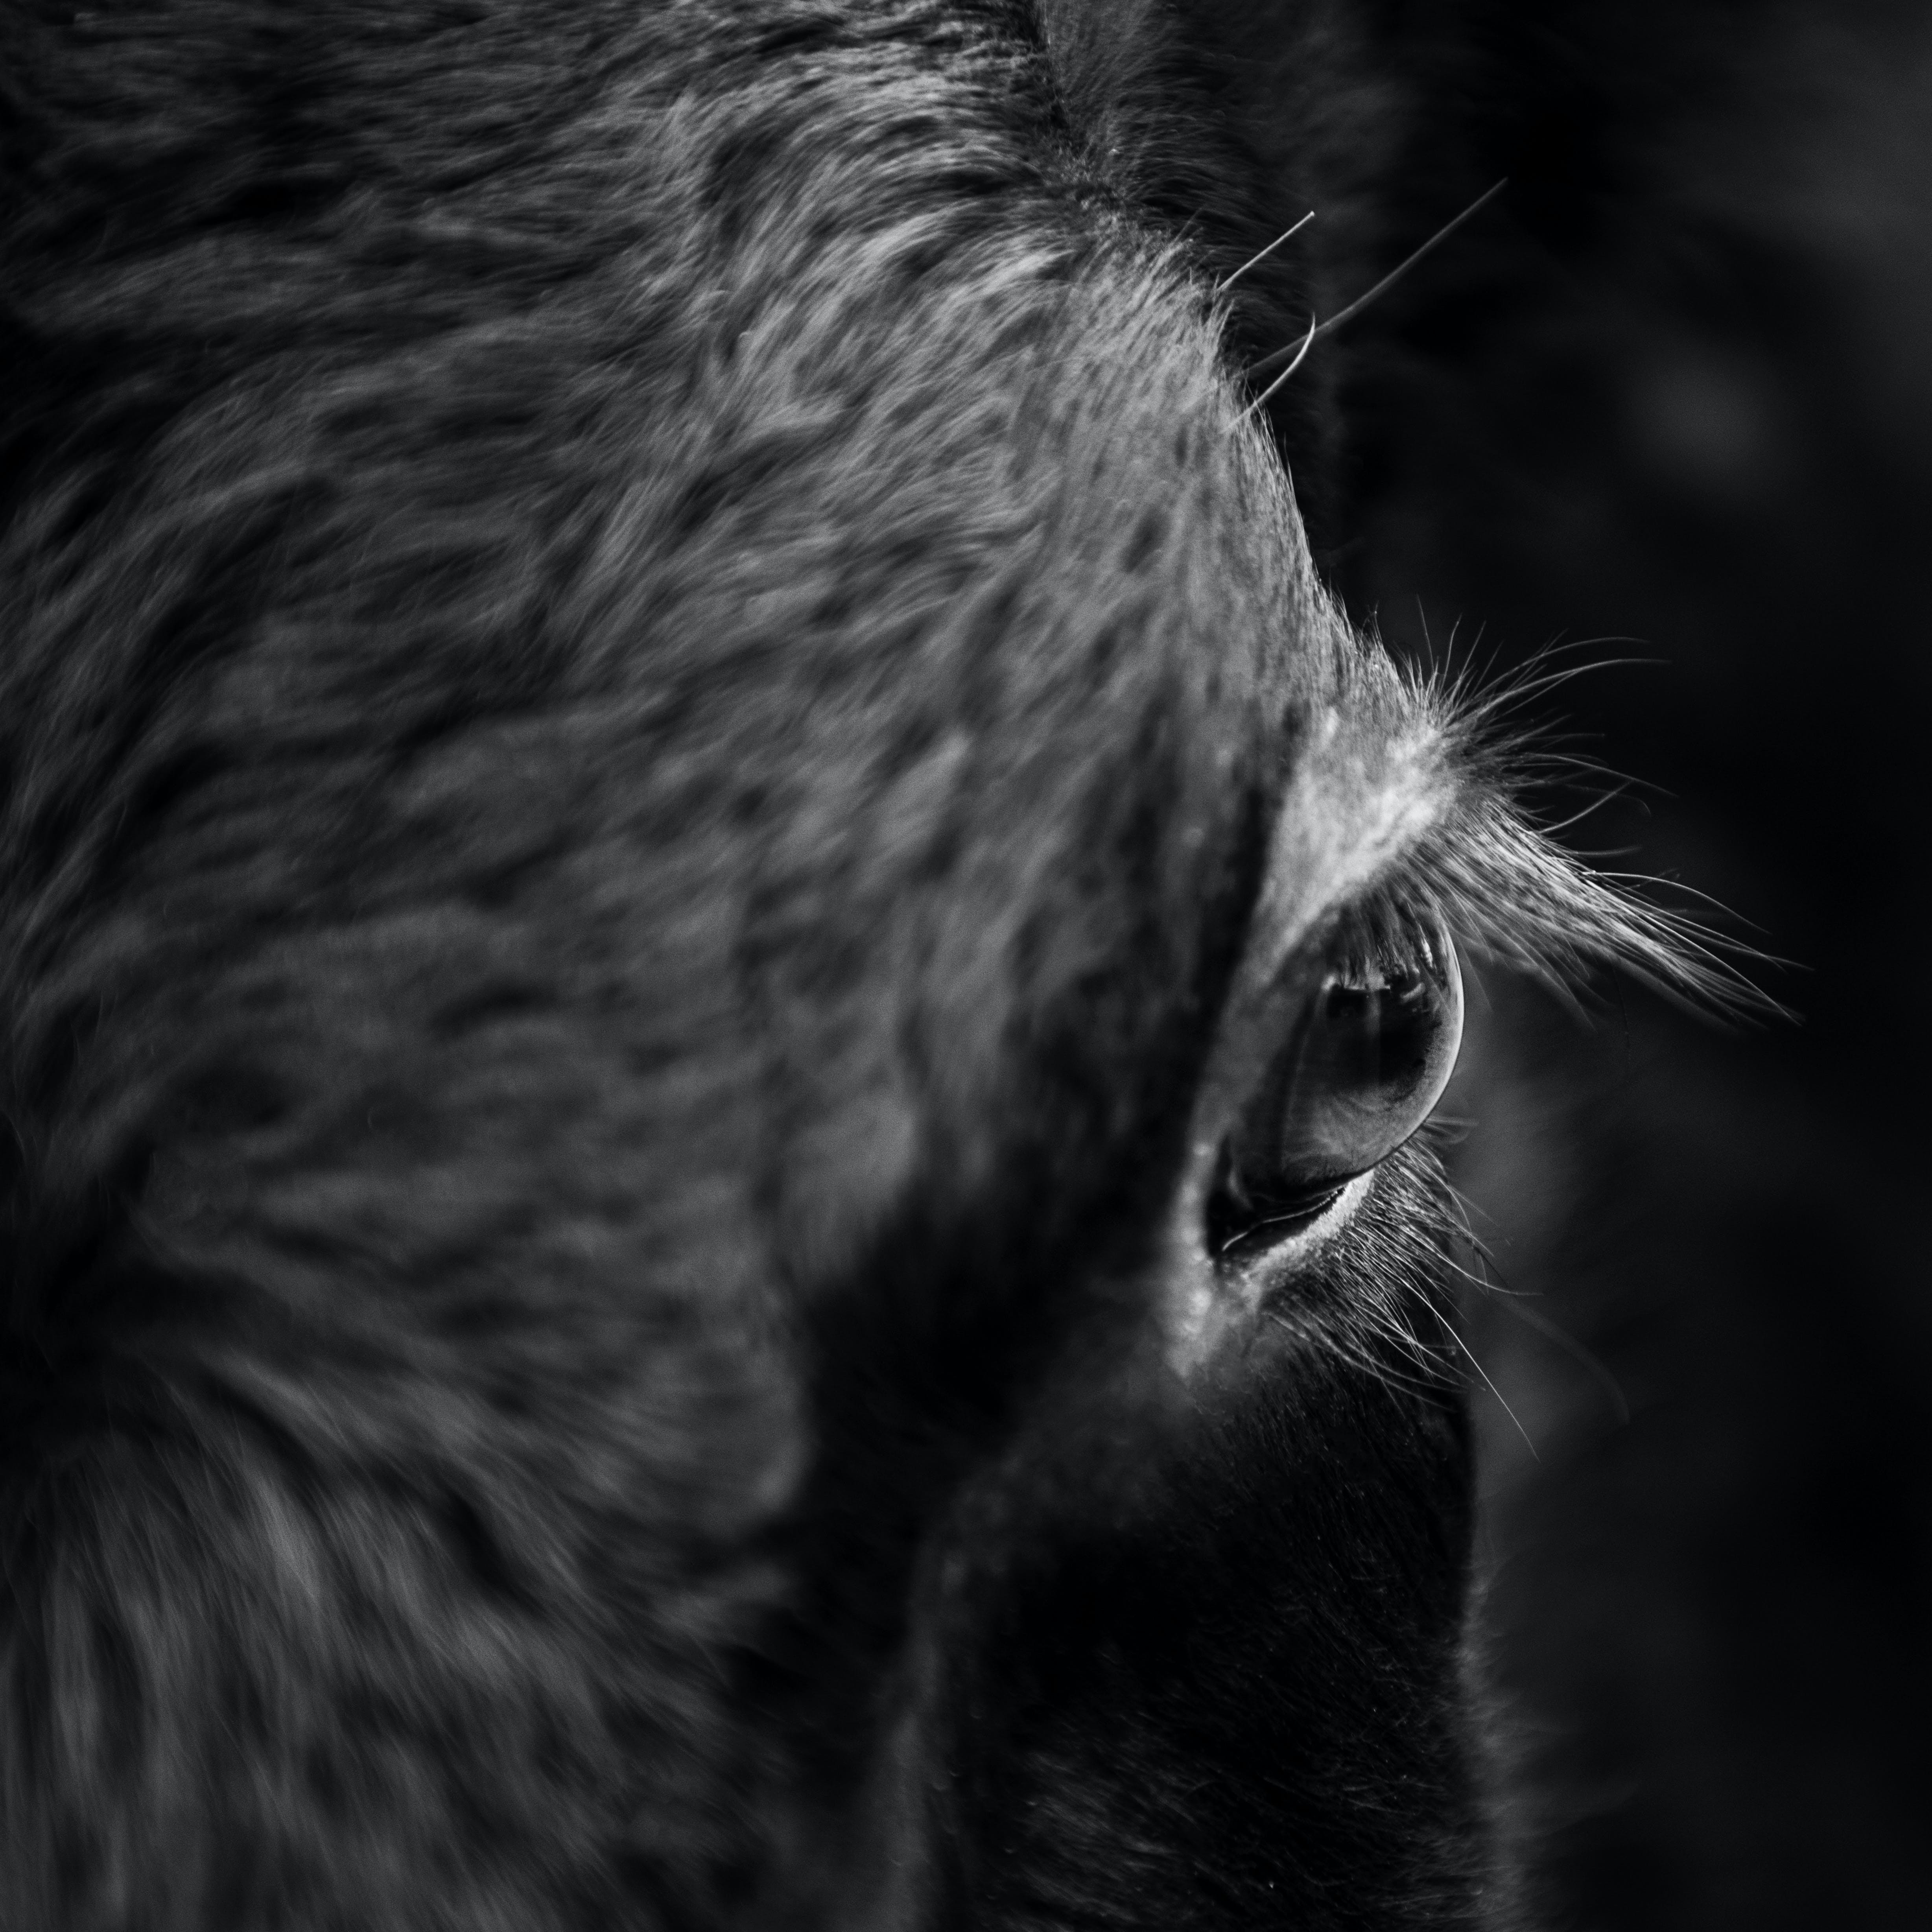 Grayscale Close-up Photography of Horse